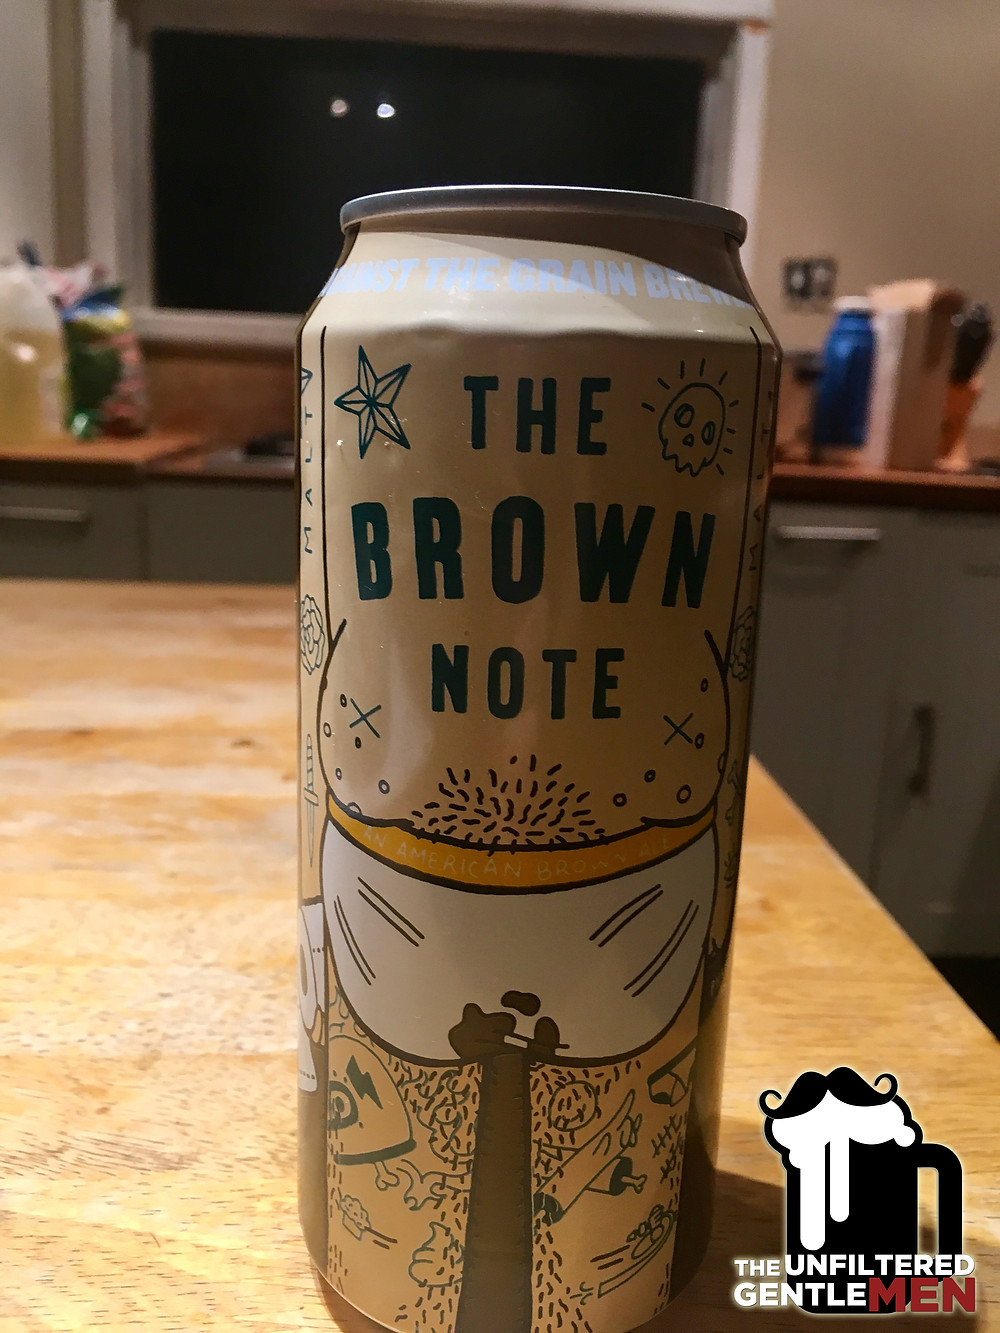 It's The Beer Girl Reviews The Brown Note on The Unfiltered Gentlemen